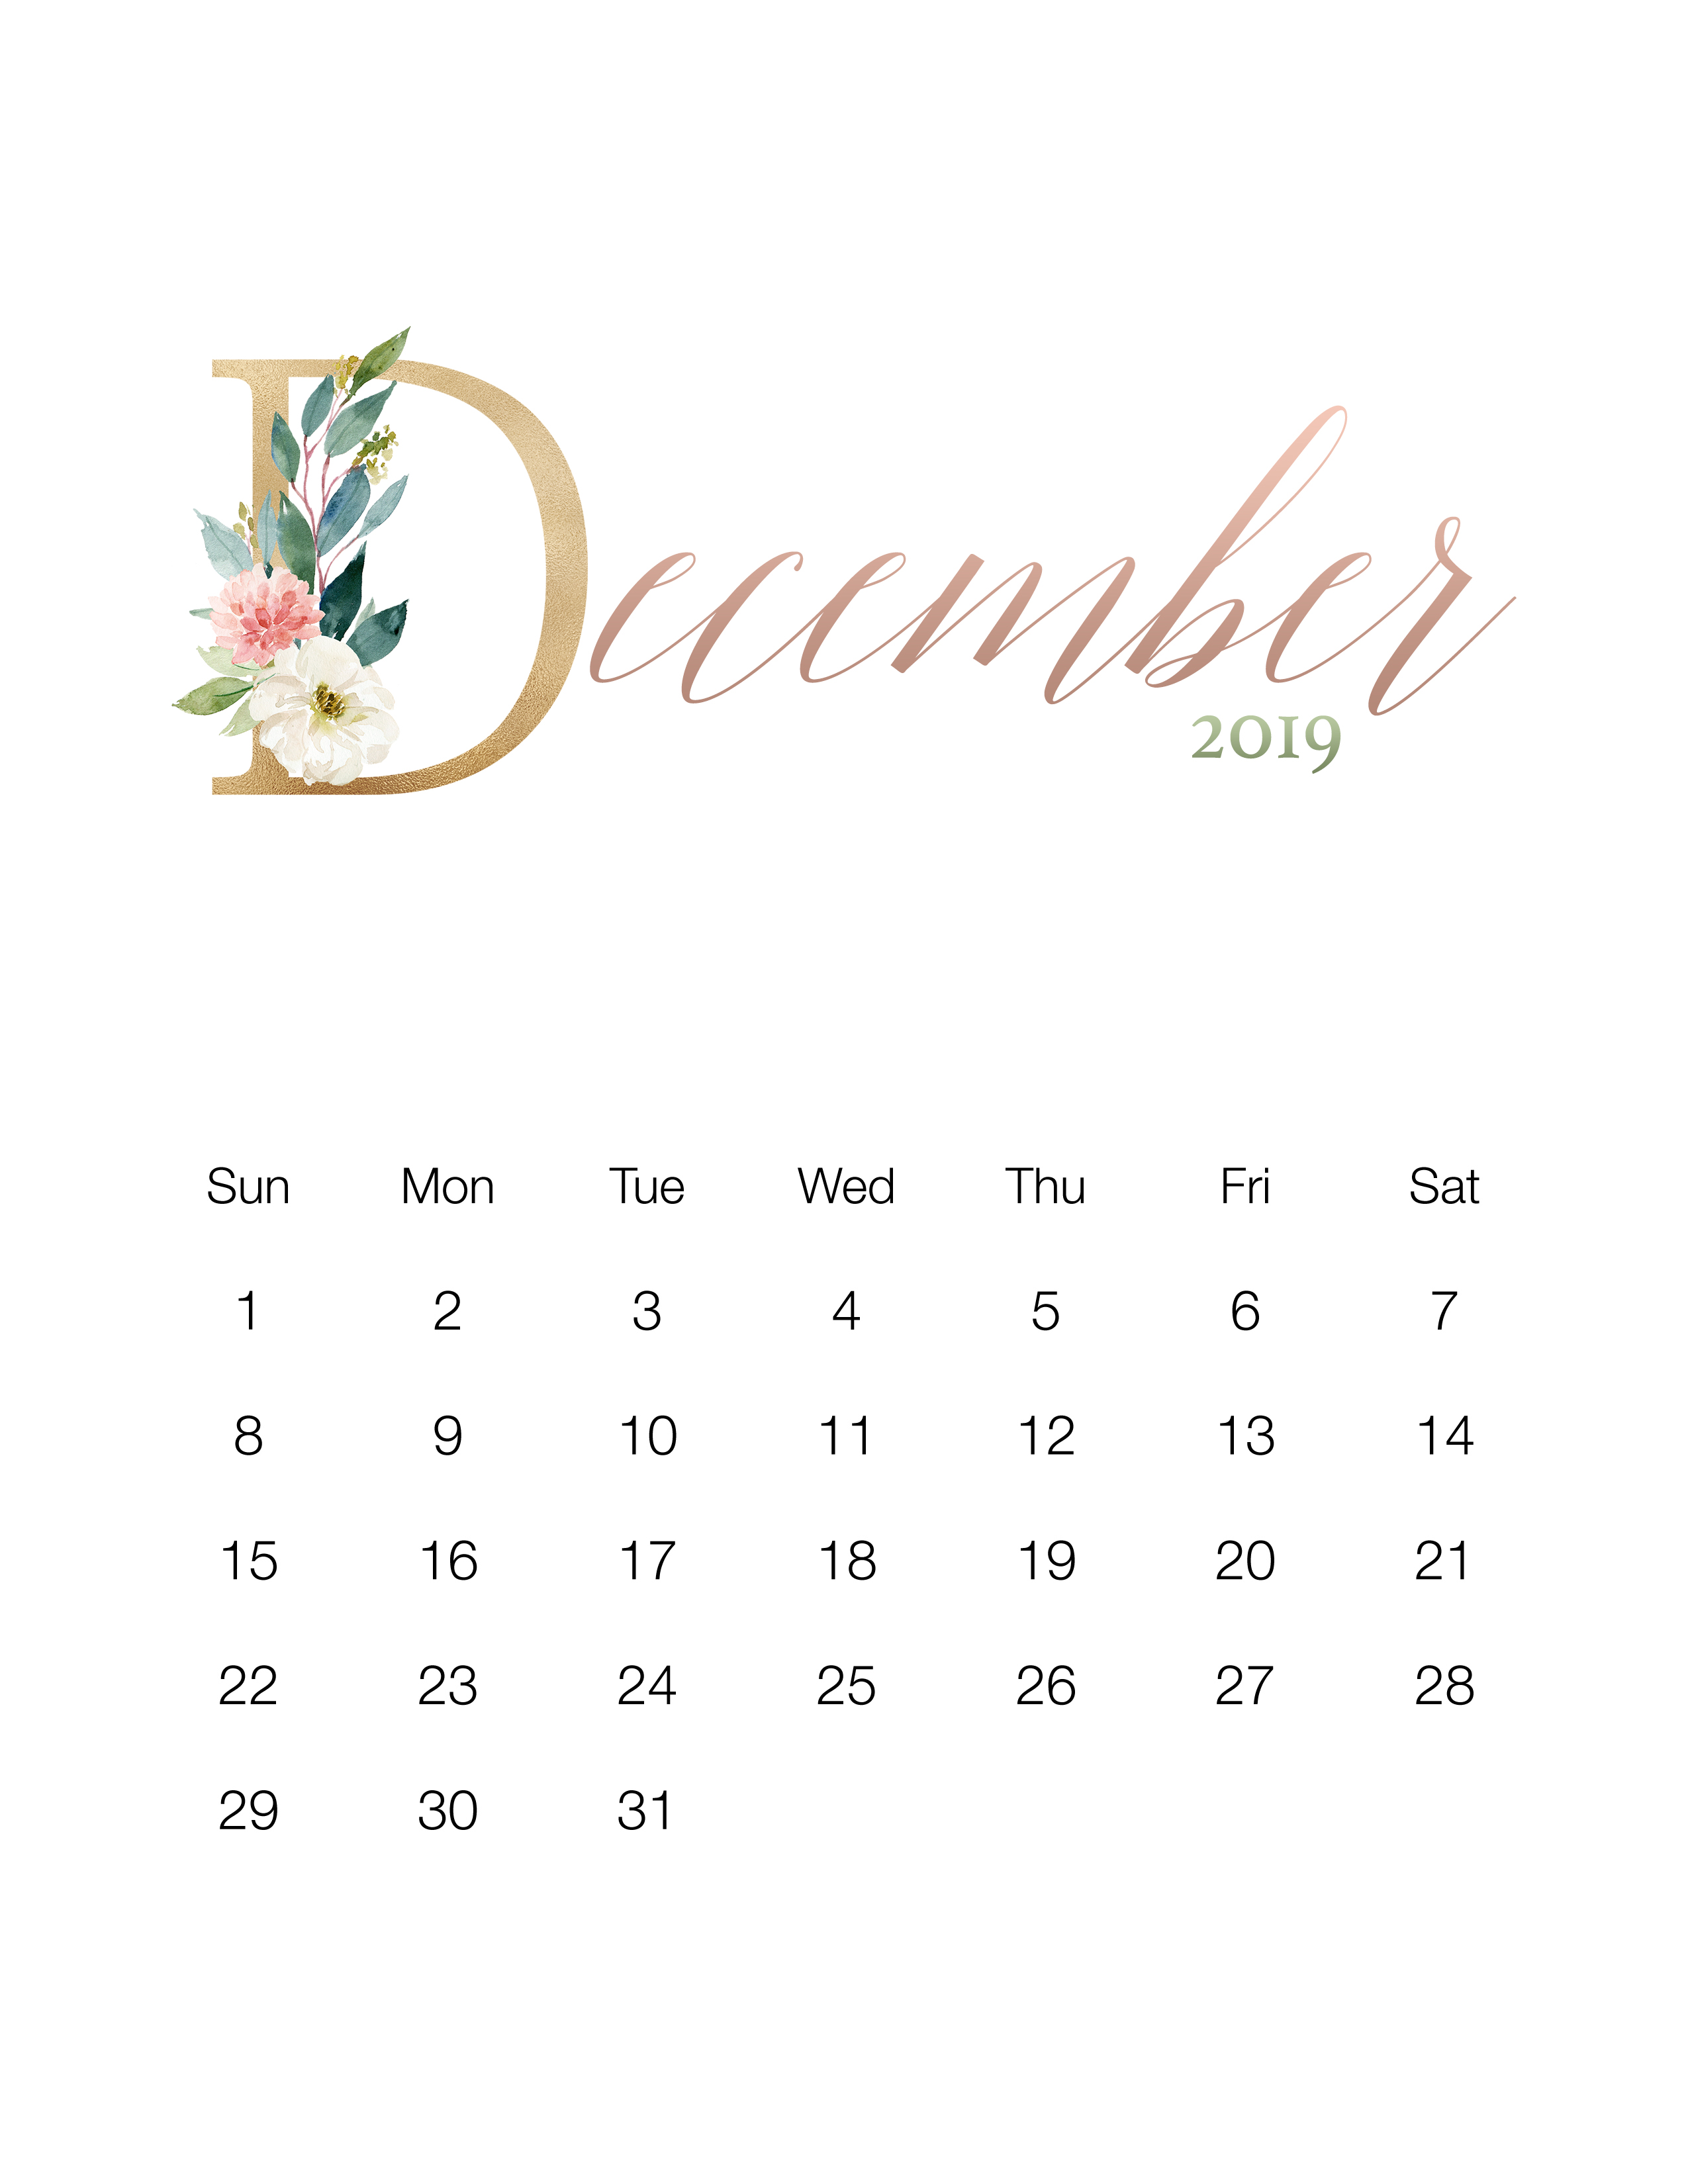 Beautiful November December 2019 Calendar Pretty Floral Free Printable 2019 Calendar   The Cottage Market